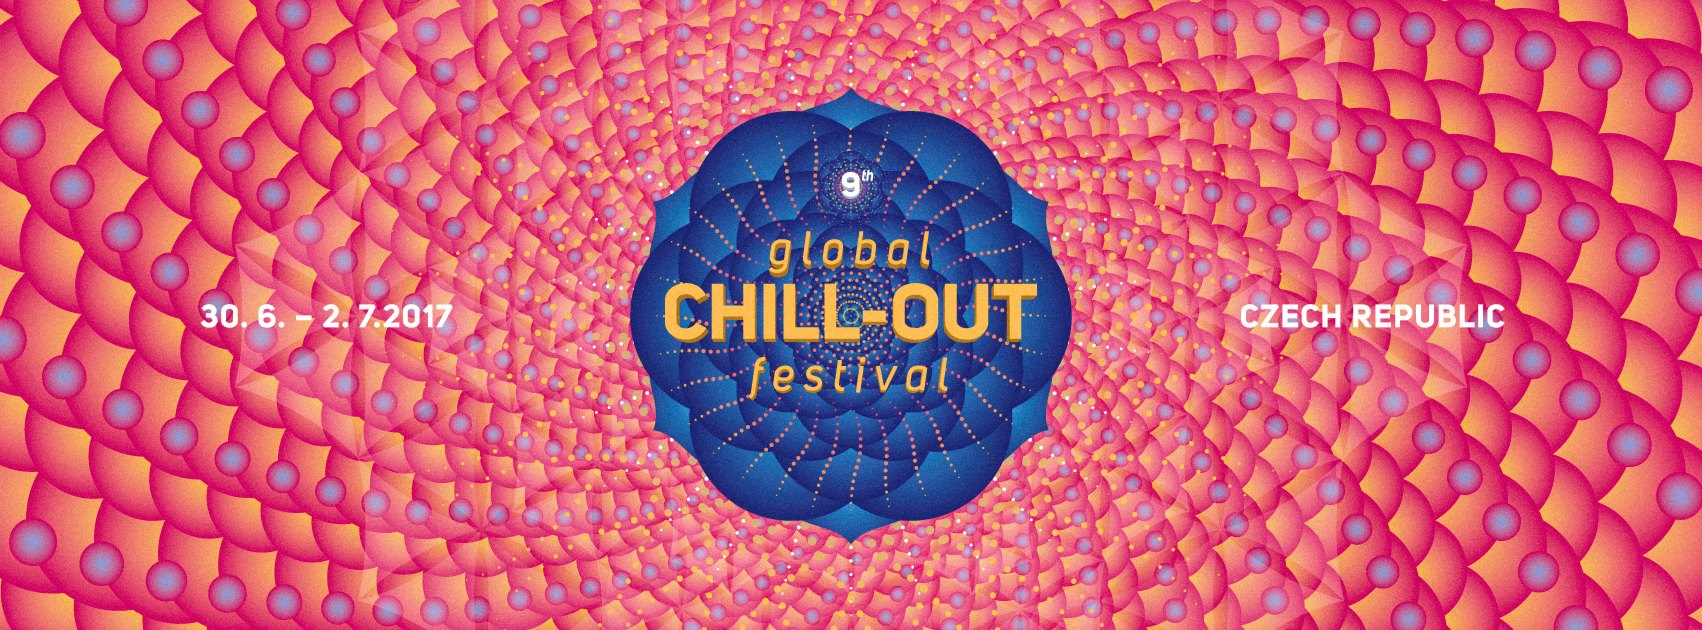 Shivanam I-One Live - Global Chill-Out festival no. 9